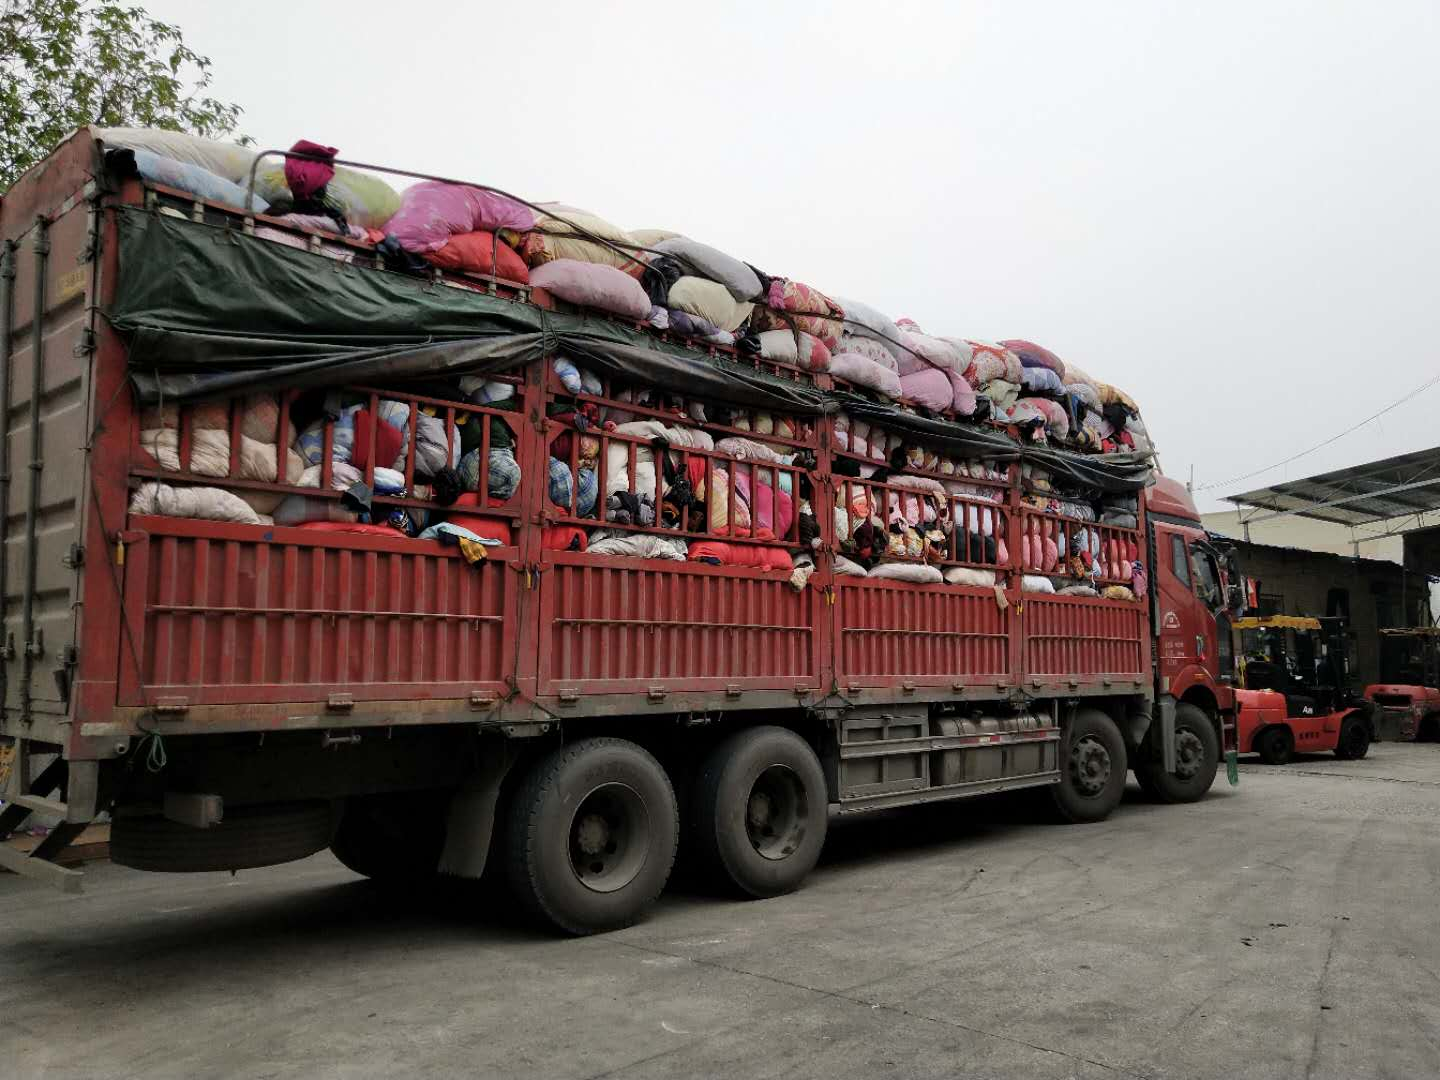 China Mixed Sorted second hand clothes of ADULT CARGO LONG PANTS pant cotton used clothes in bales